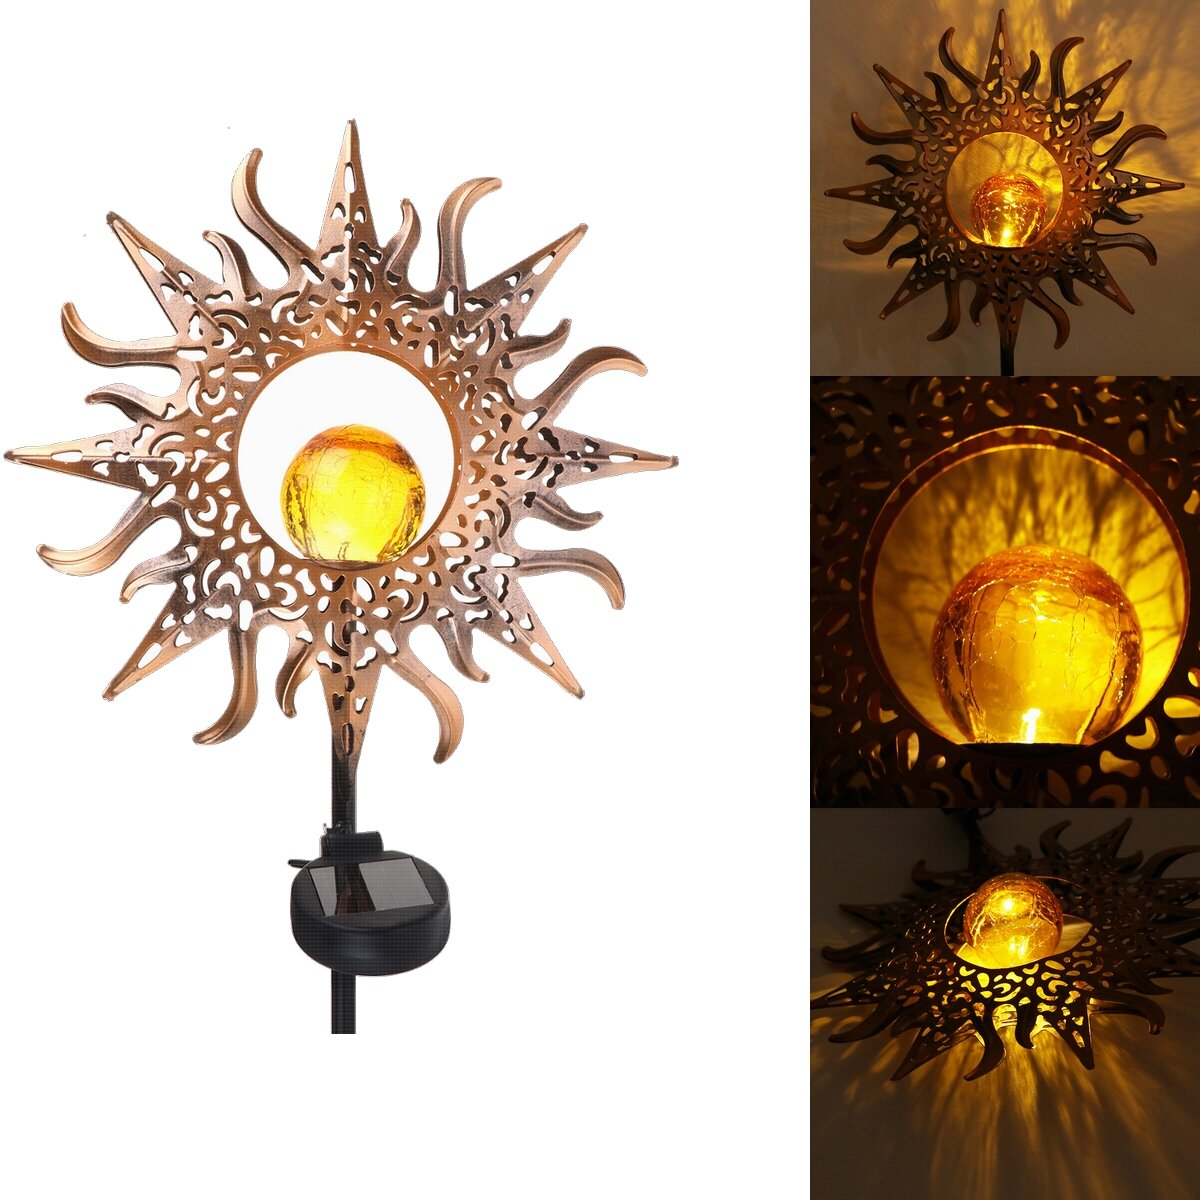 Outdoor Wrought Iron Ground Plug Solar Lawn Lamp Golden Sun Retro Hollow Courtyard Landscape Projection Lamp